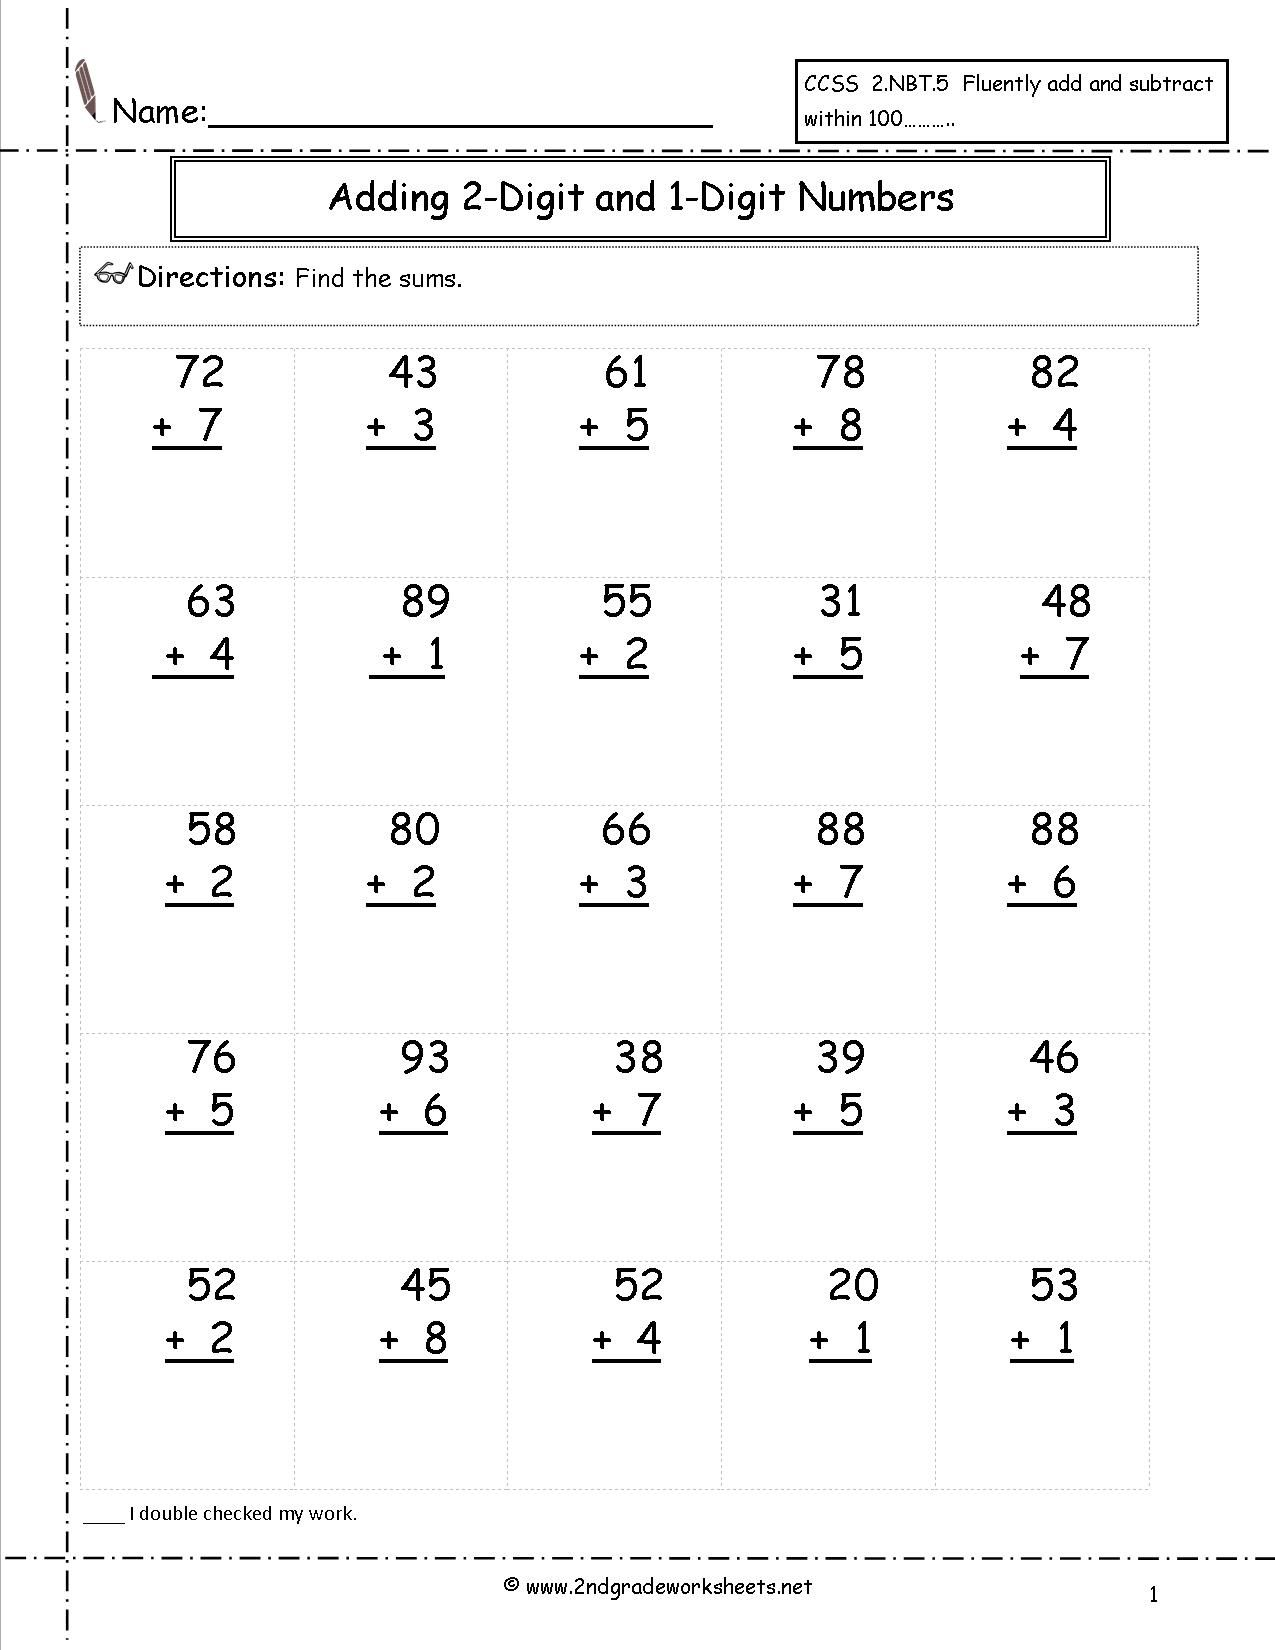 Adding Two Digit And One Digit Numbers